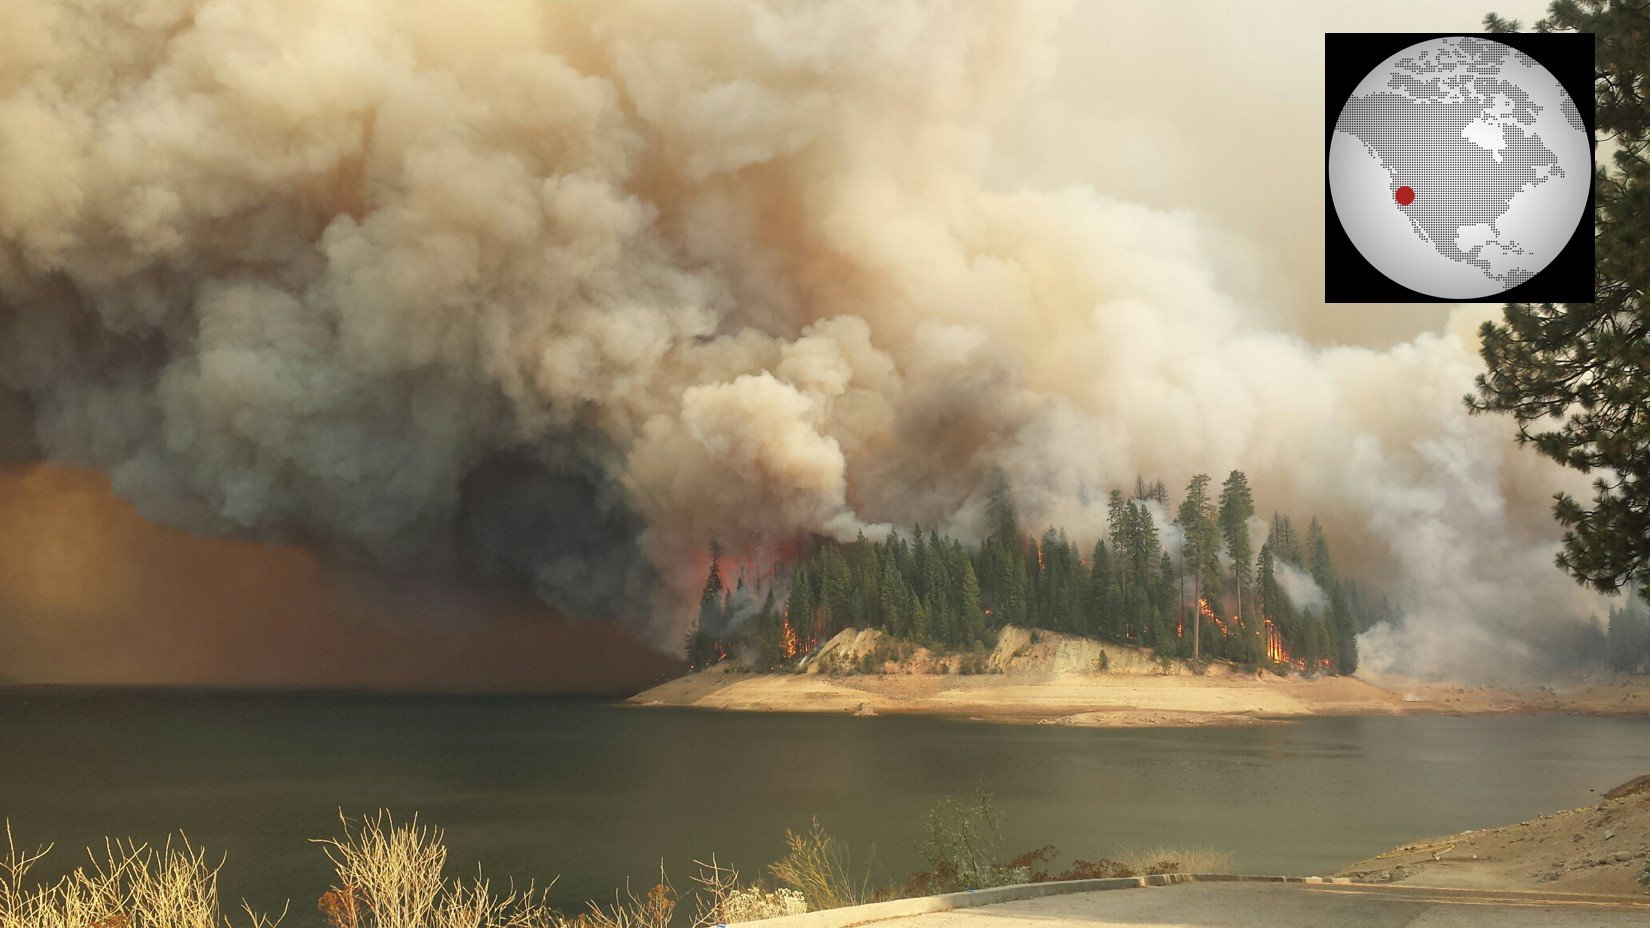 This image captures the King Fire actively burning through Stumpy Meadows Campground located on Stumpy Meadows Reservoir, CA (Photo by U.S. Forest Service Region 5).